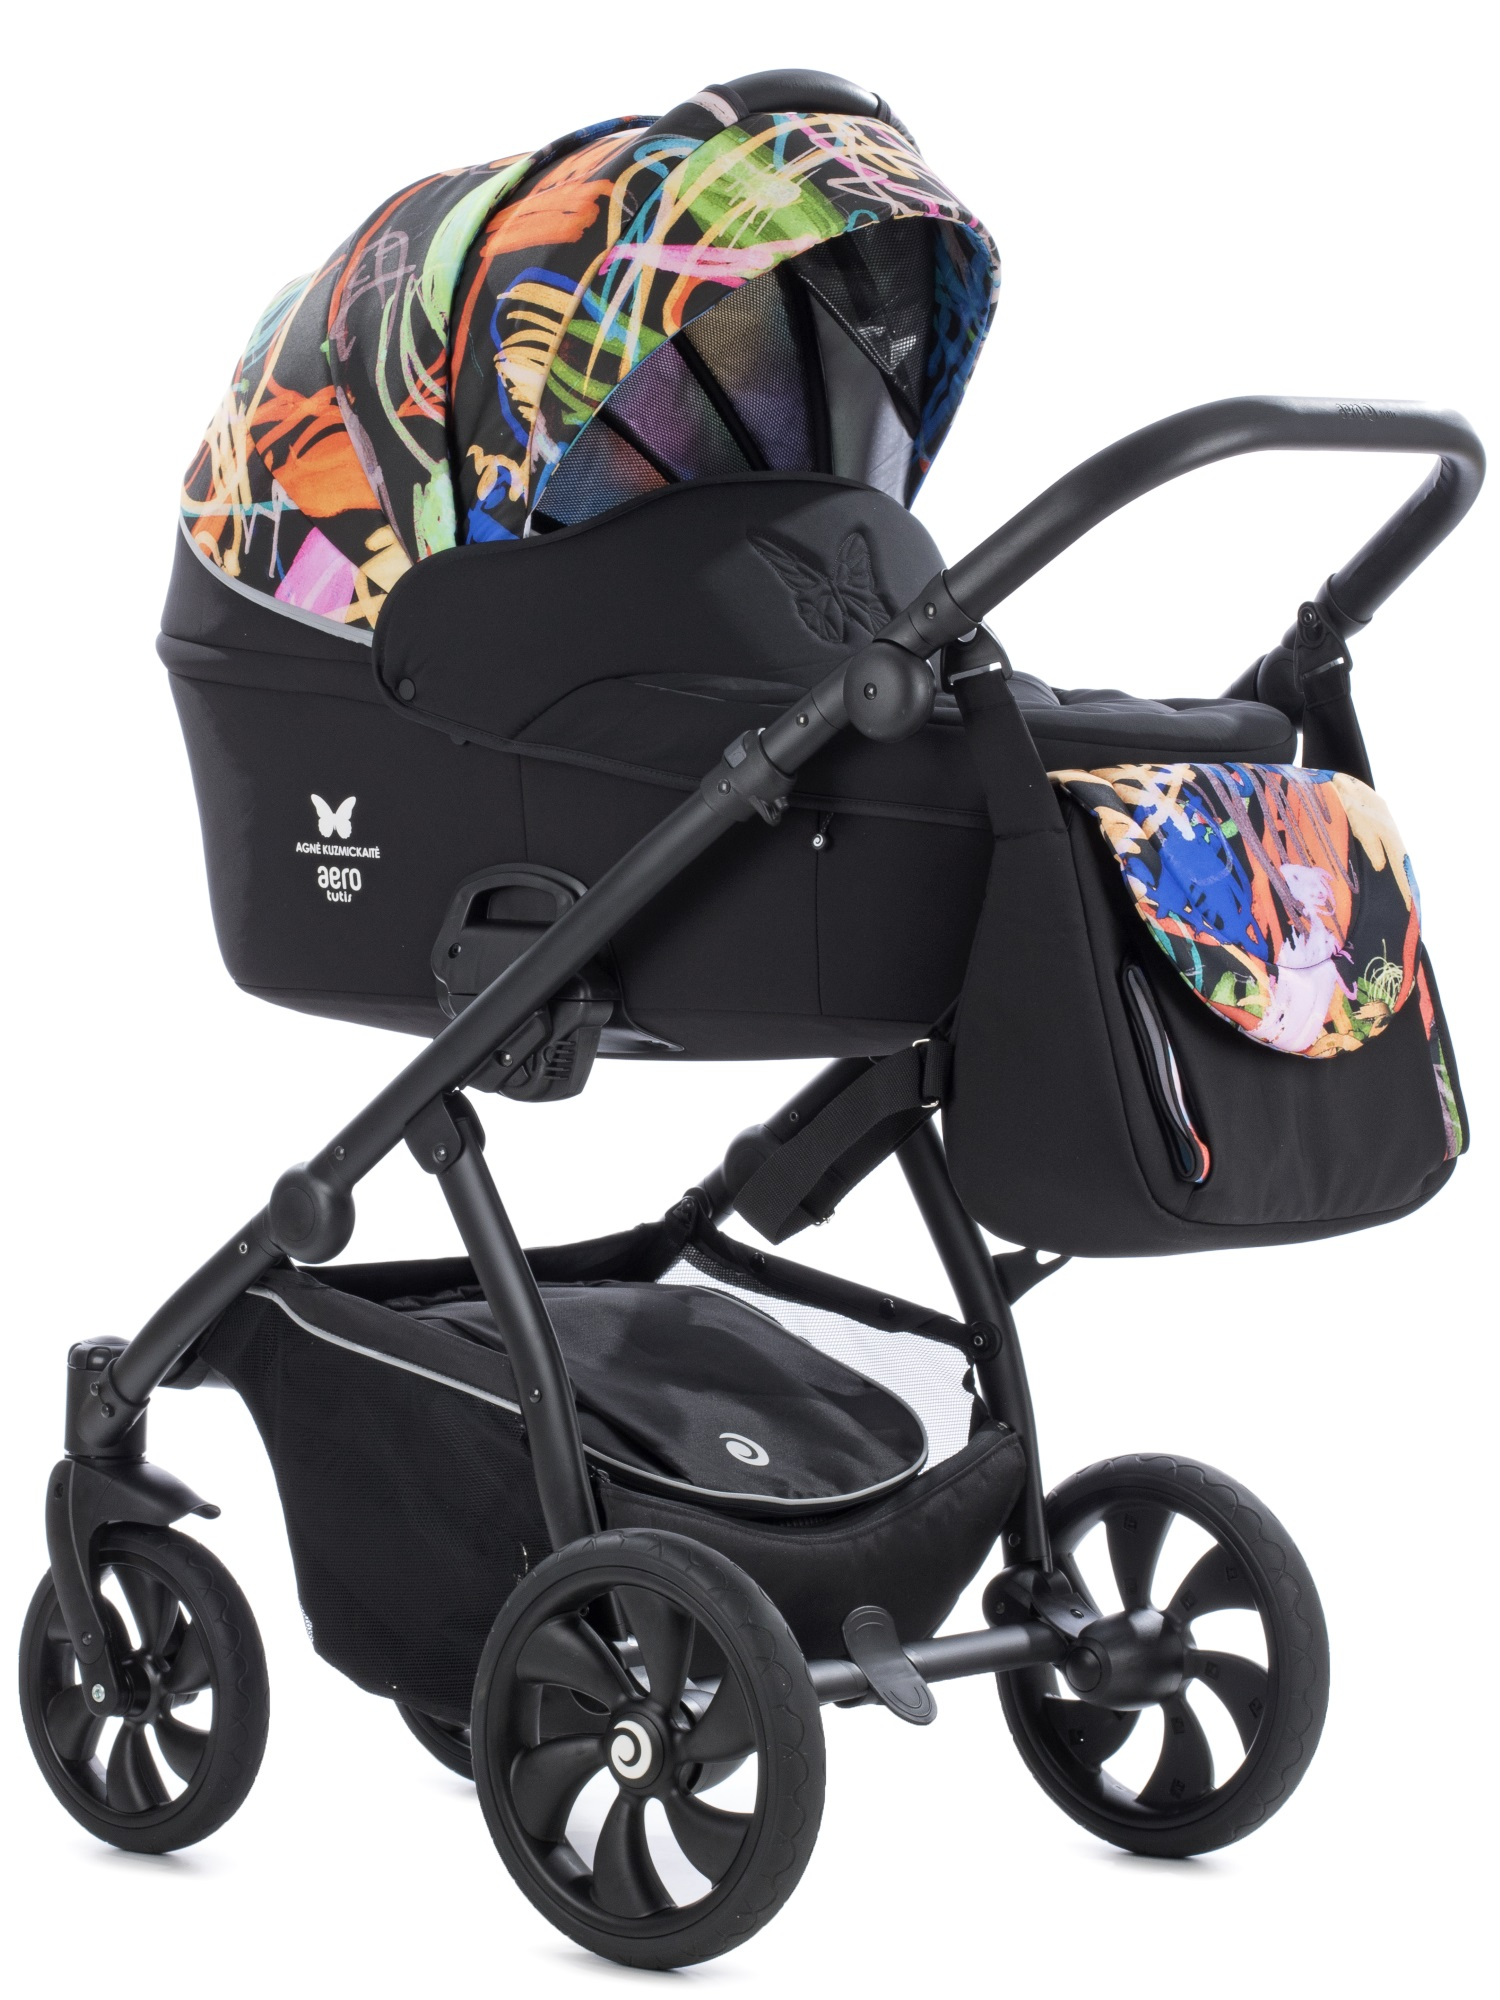 Baby Stroller That Turns Into Car Seat Aero Tutis 119 Black Painting Agnė Kuzmickaitė Limited